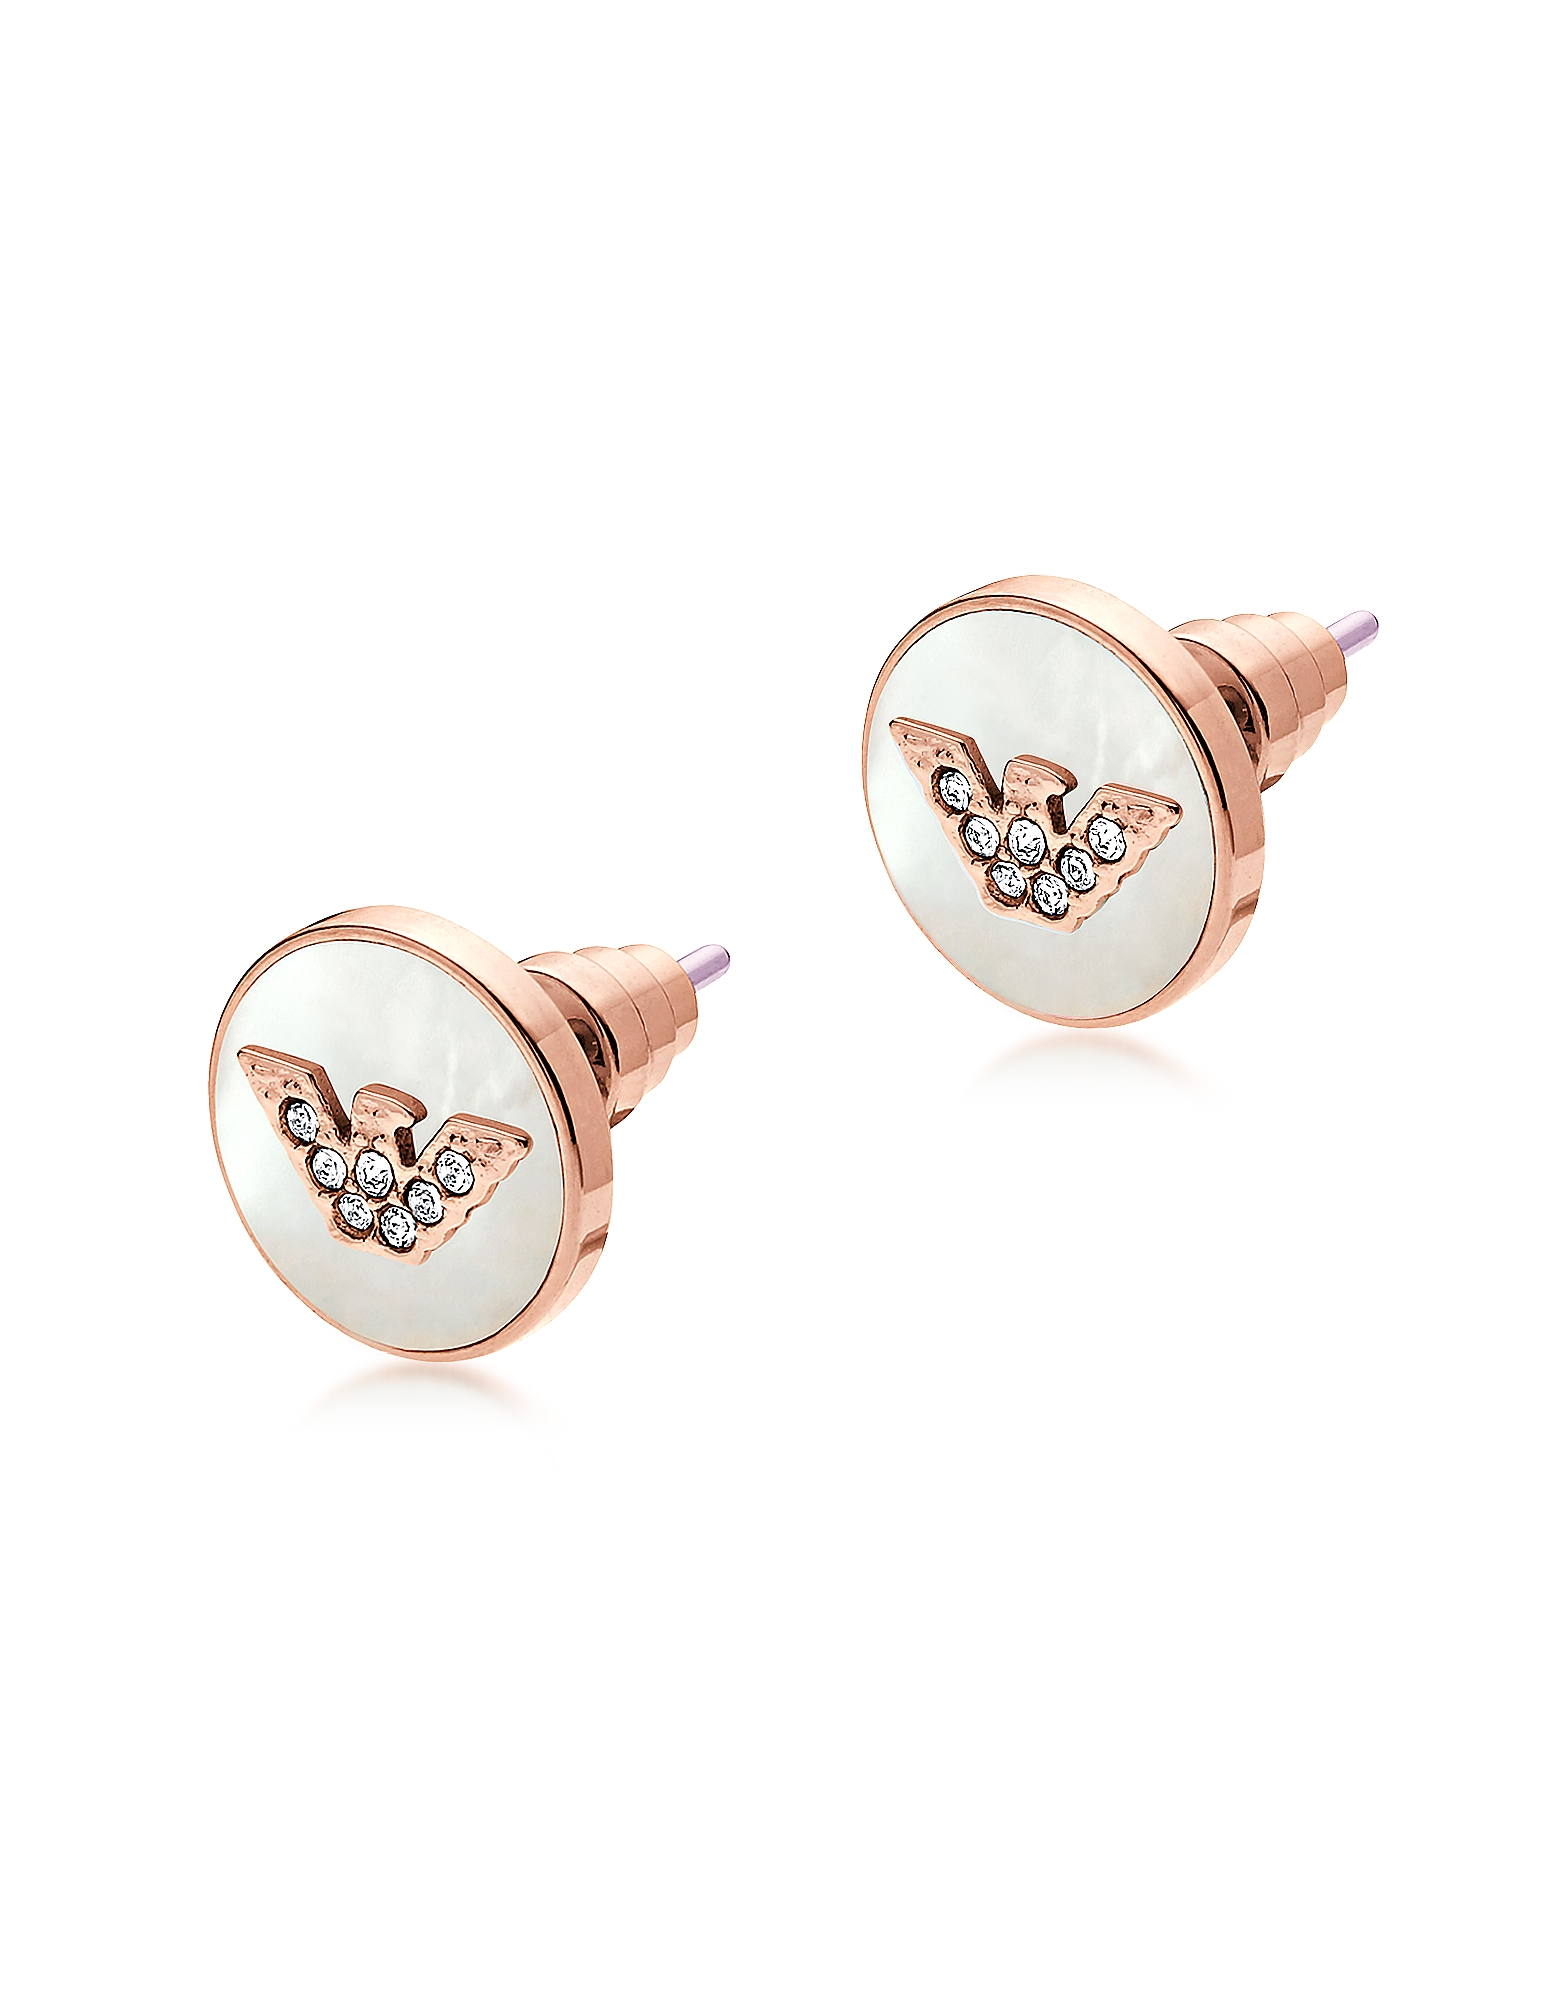 Emporio Armani Earrings, Signature Rose Gold PVD Stainless Steel Earrings